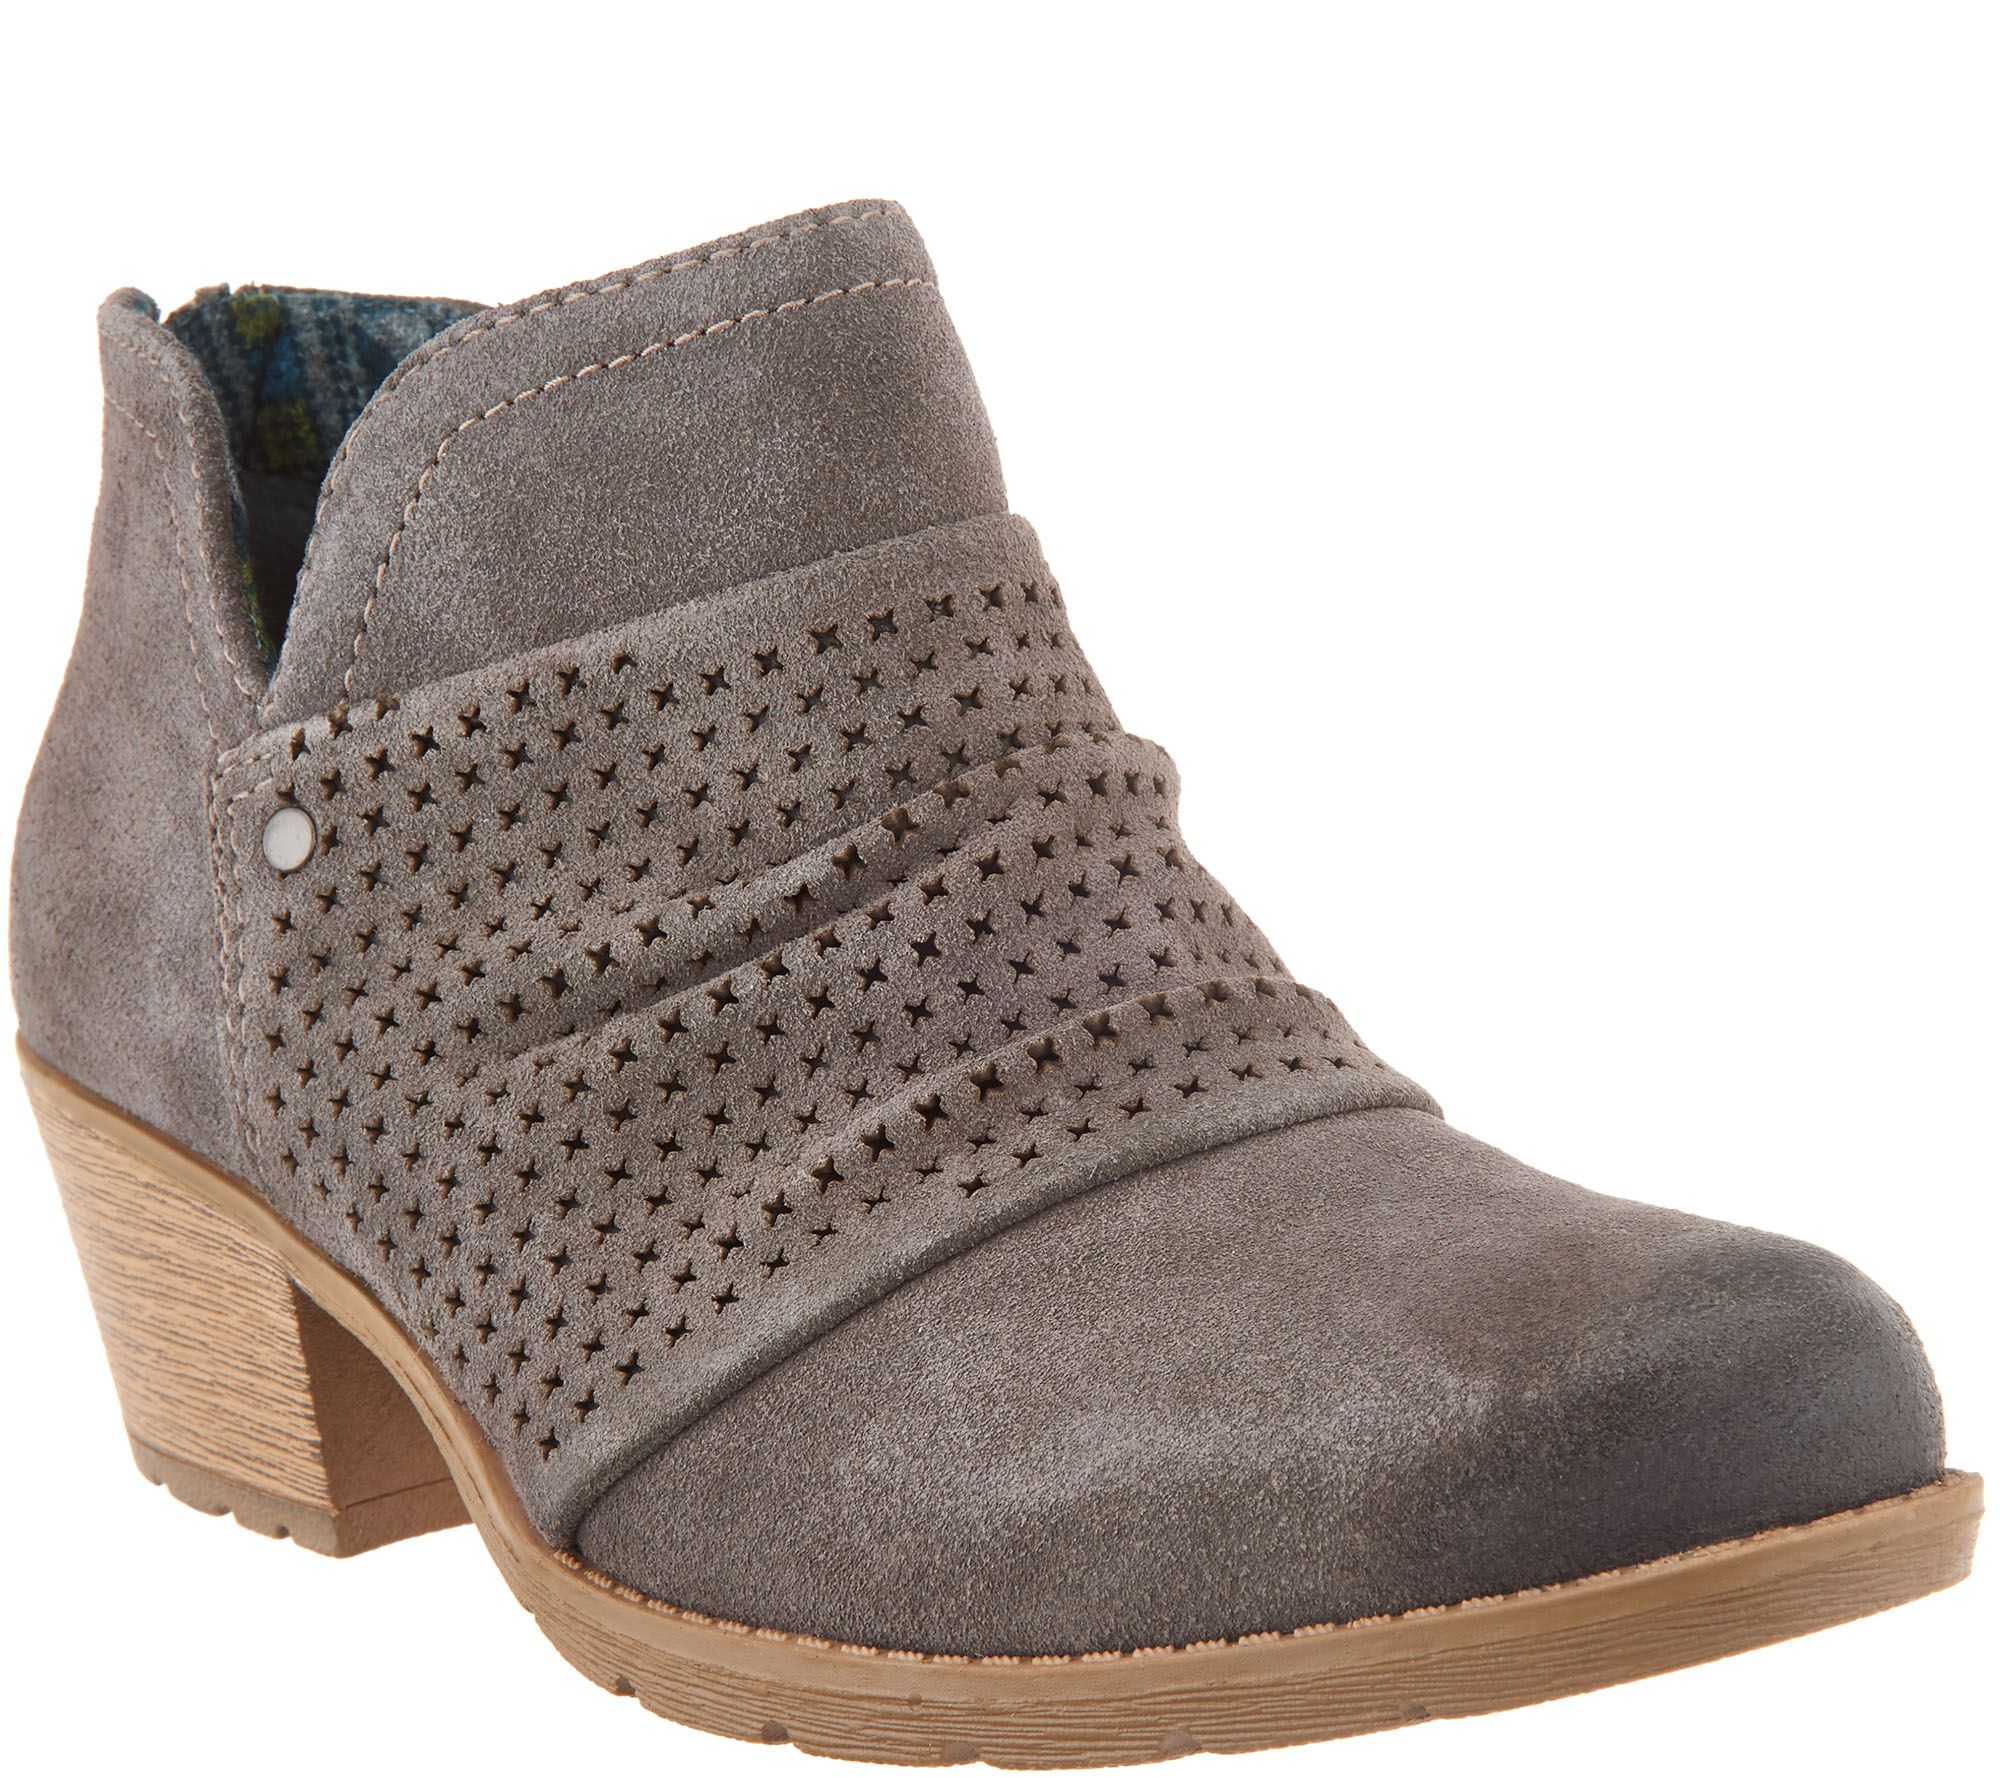 344839ee587 Earth Origins Suede Booties w  Perforated Ruching - Amanda - Page 1 — QVC .com